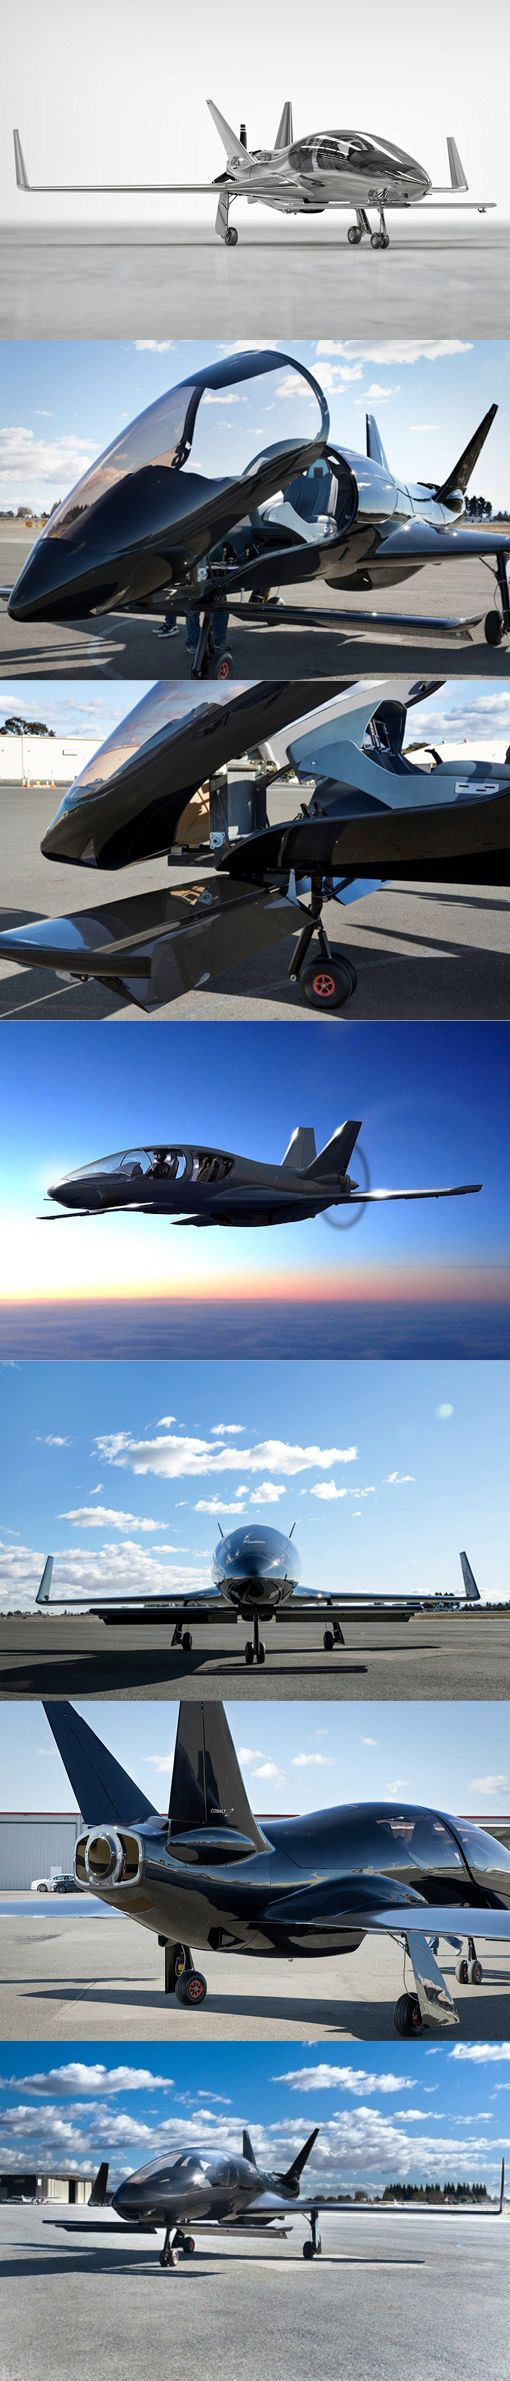 Cobalt Co50-Valkyrie // The Co50 Valkyrie | Cobalt www.cobalt-aircraft.com/co50-valkyrie/ The Valkyrie is one of the fastest piston aircraft on the market, and is designed to be the safest. Inspired by classic fighter jets with clean lines and.                                                                                                                                                      More